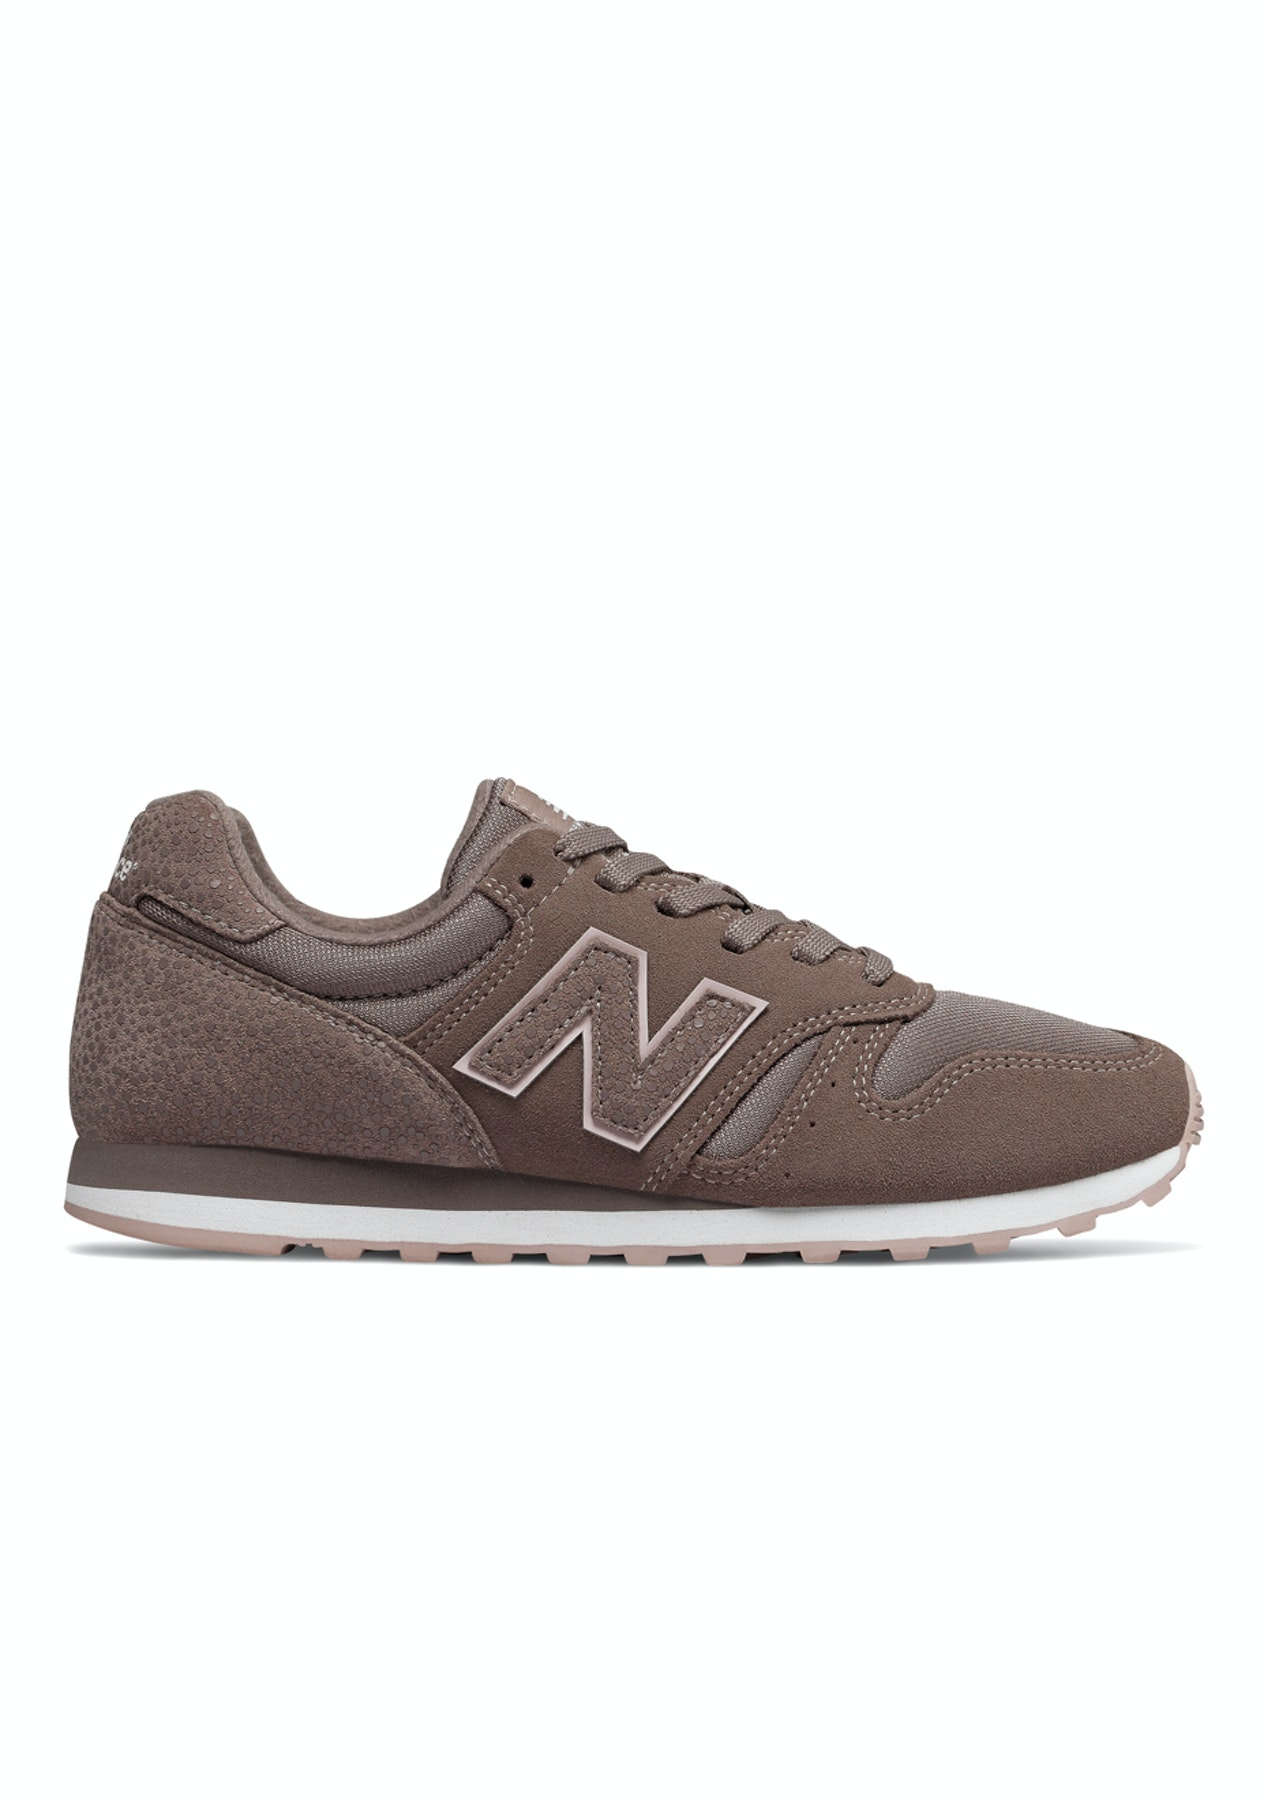 d2582100d8803 New Balance Womens - 373 Suede - Latte with Conch Shell - Free Shipping Street  Shoes + Slides - Onceit